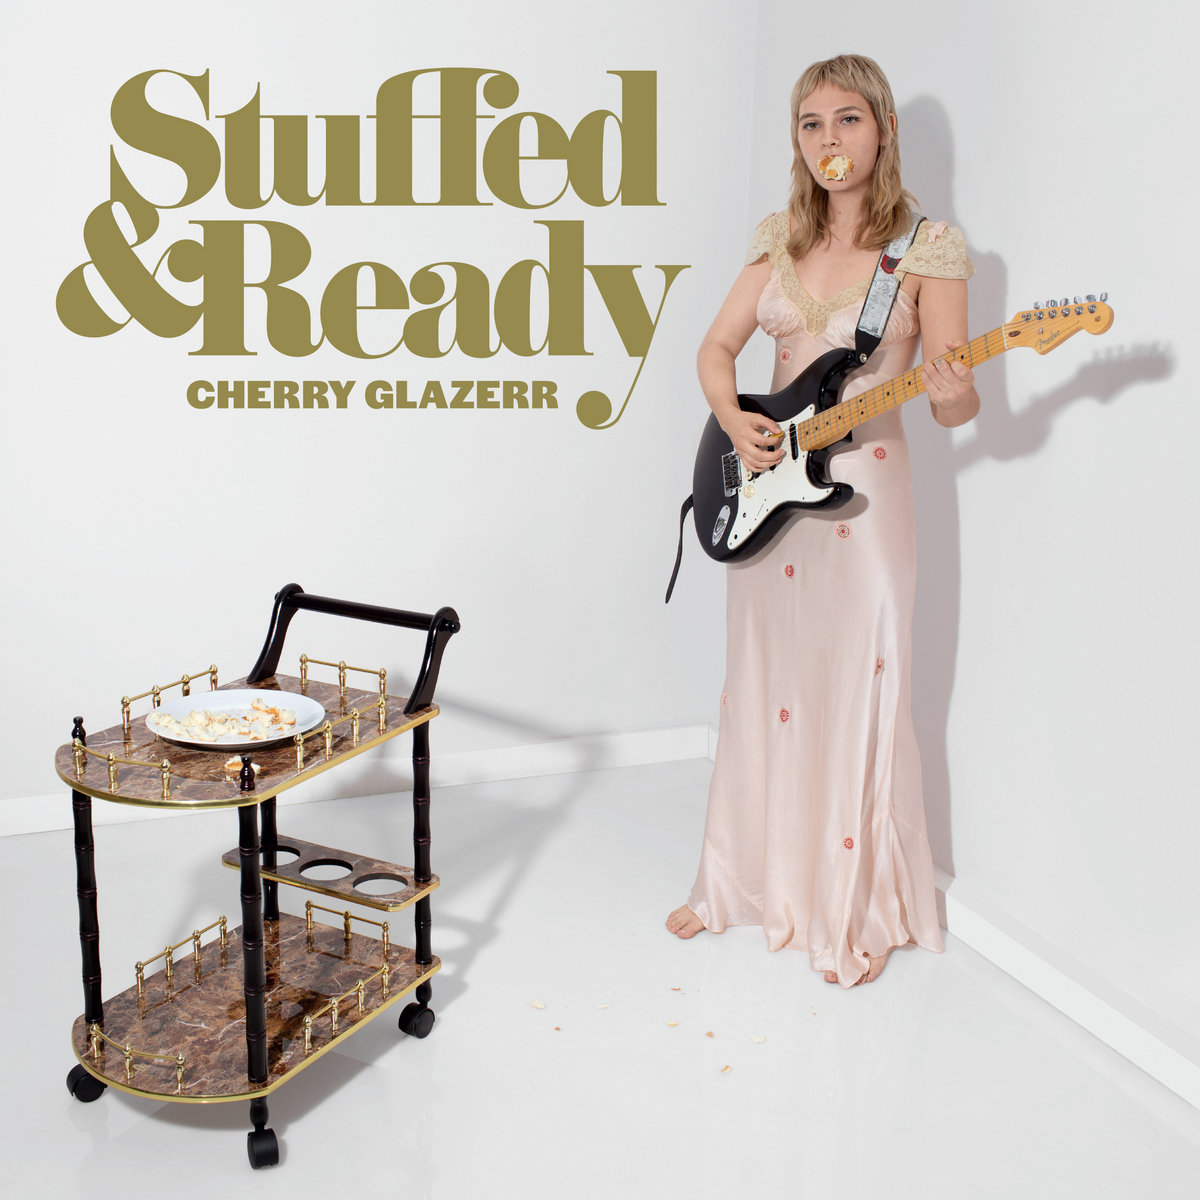 Image result for cherry glazerr stuffed & ready""